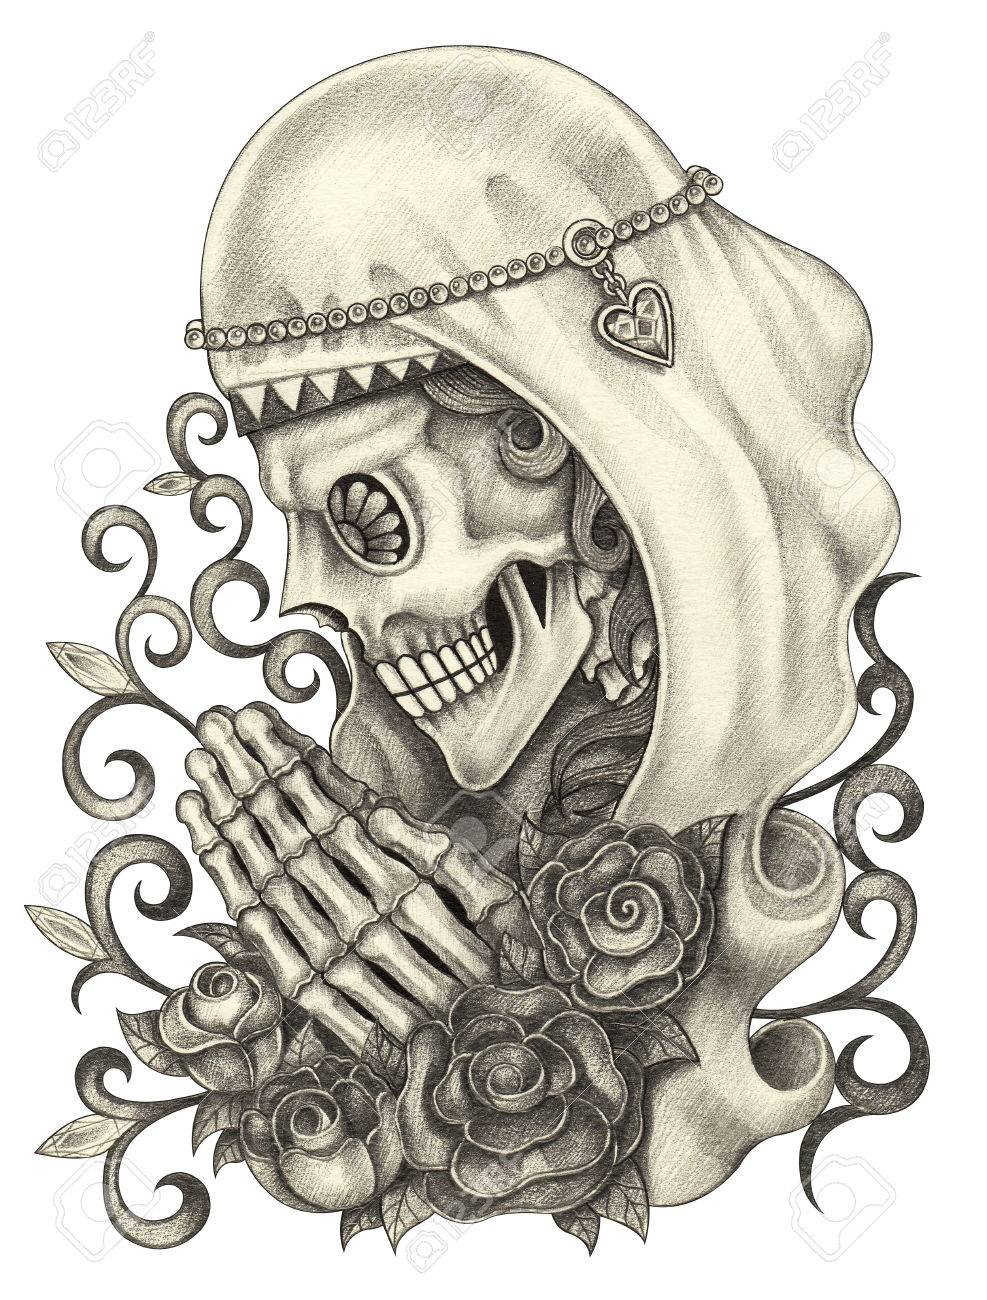 Skull art day of the dead hand pencil drawing and color painting on paper